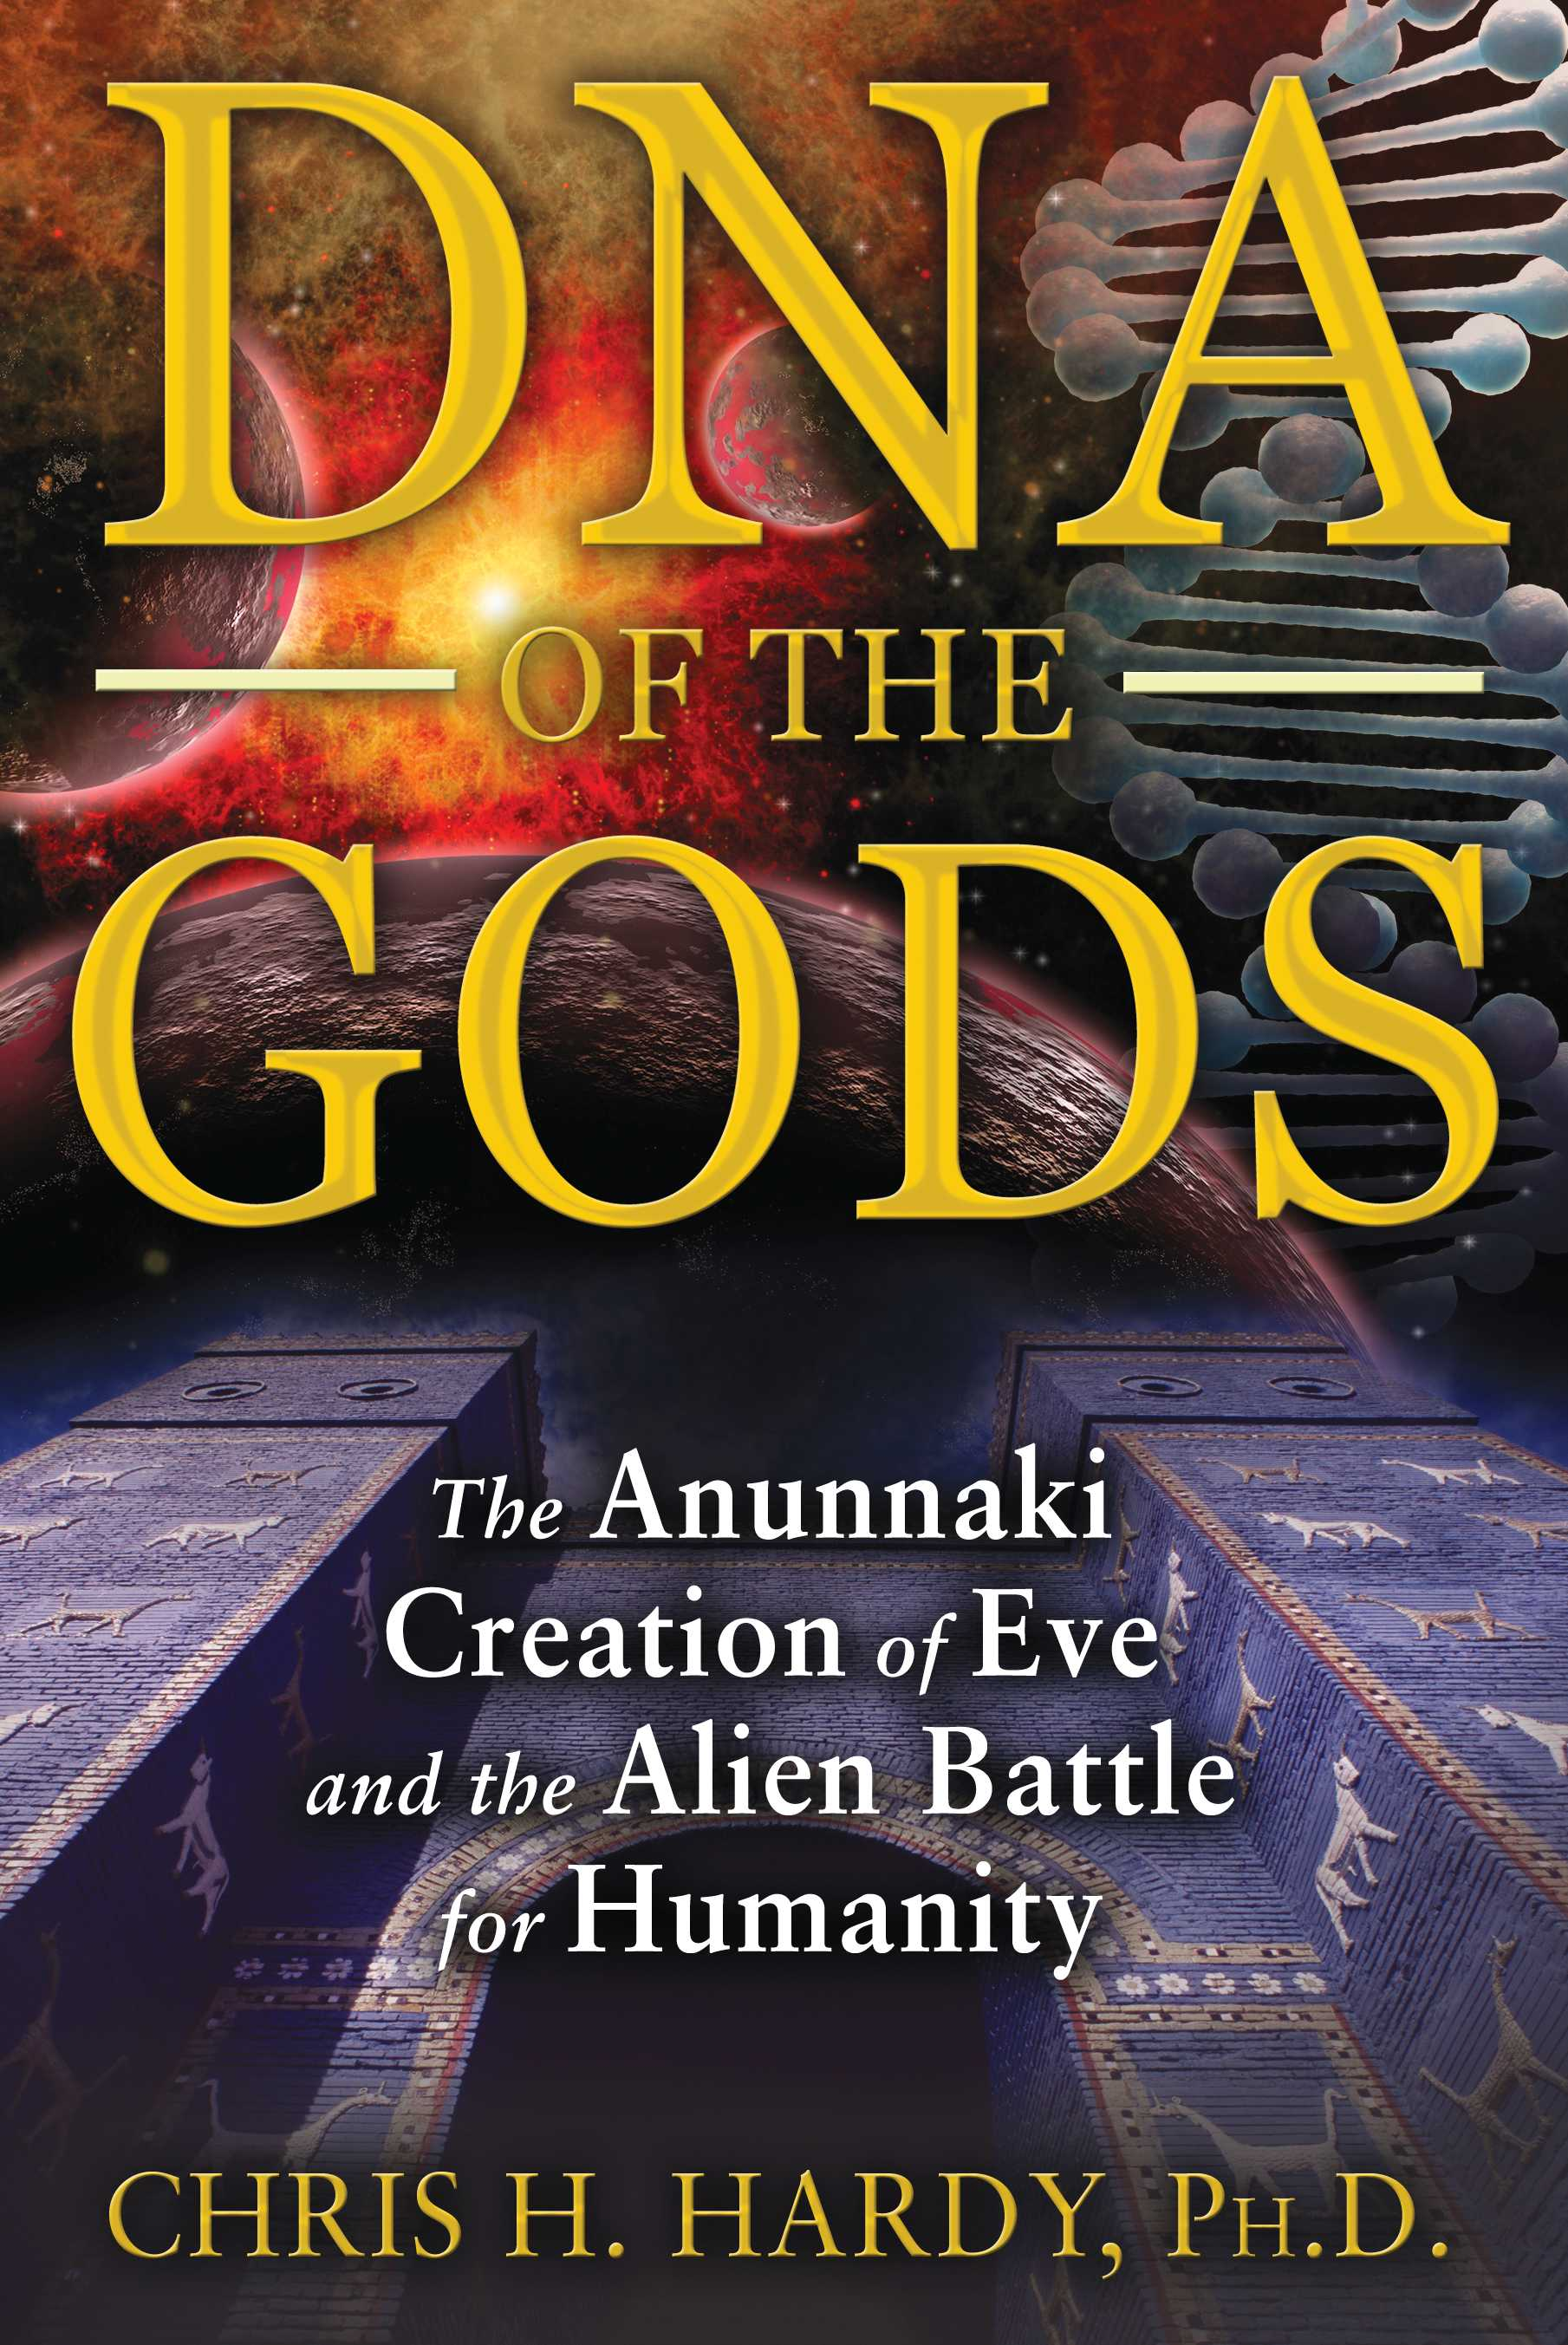 Dna of the gods 9781591431855 hr